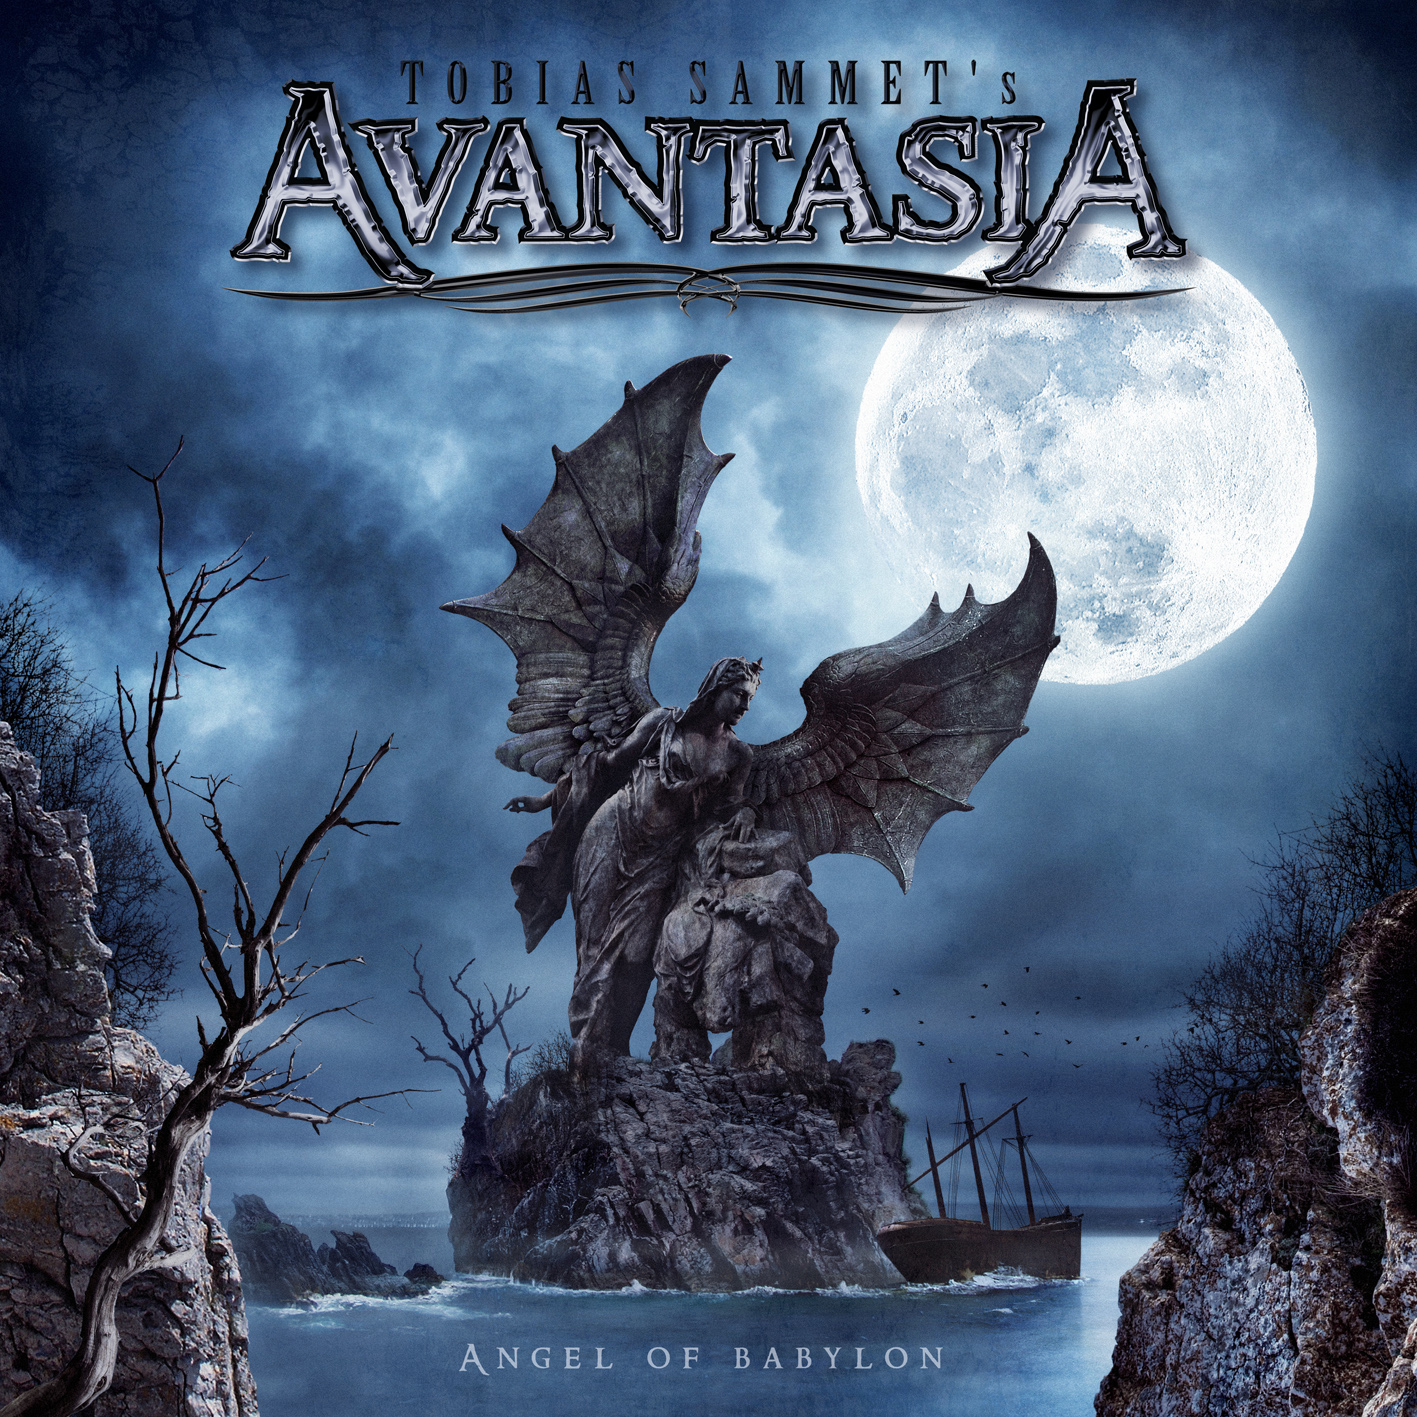 Avantasia – Angel of Babylon Review